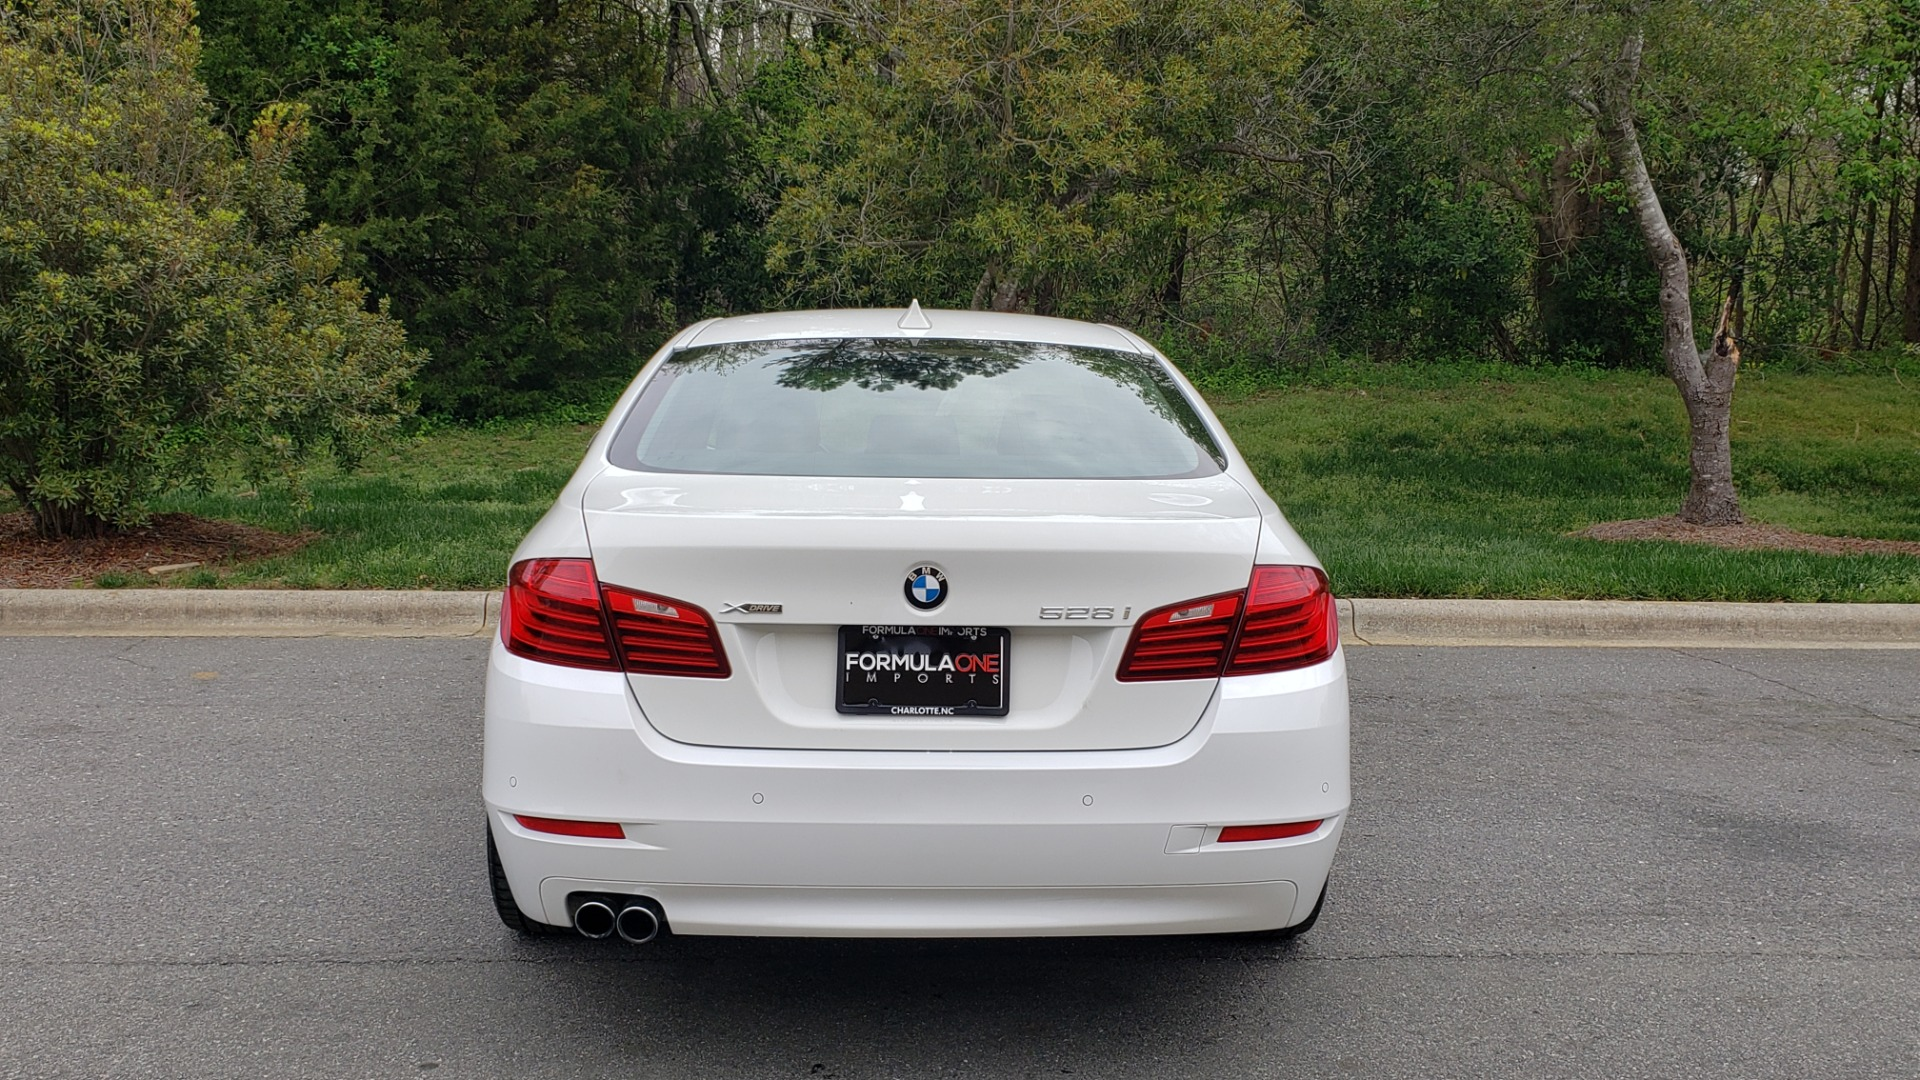 Used 2016 BMW 5 SERIES 528I XDRIVE SPECIAL EDITION / NAV / SUNROOF /HTD STS / REARVIEW for sale Sold at Formula Imports in Charlotte NC 28227 28